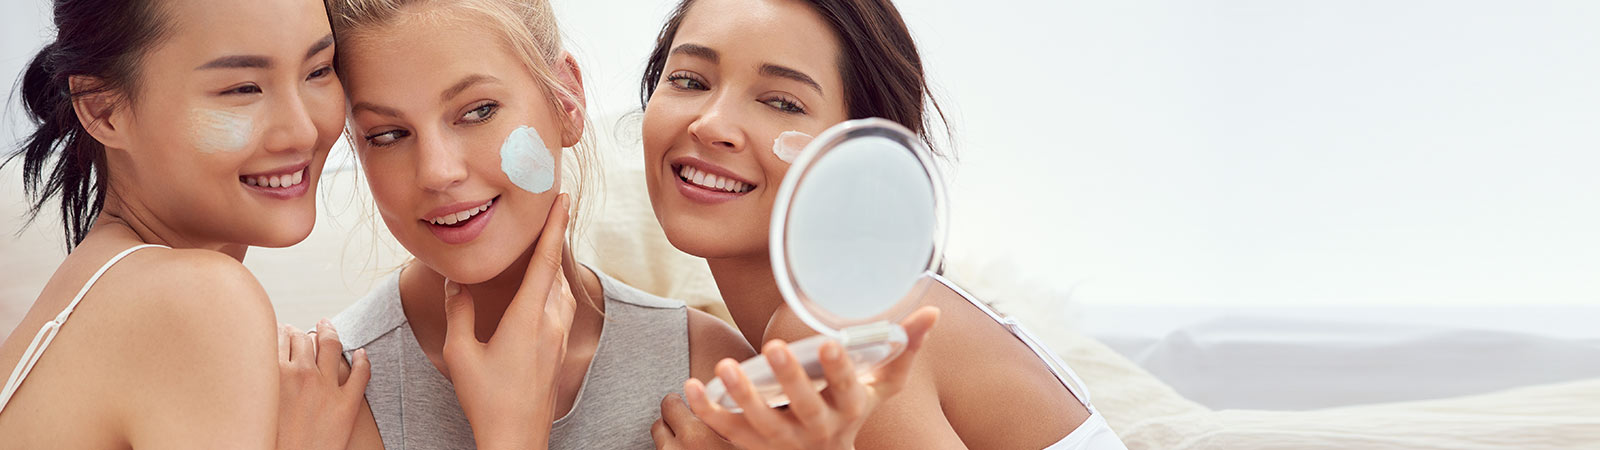 Hydration: what are your skin's needs?